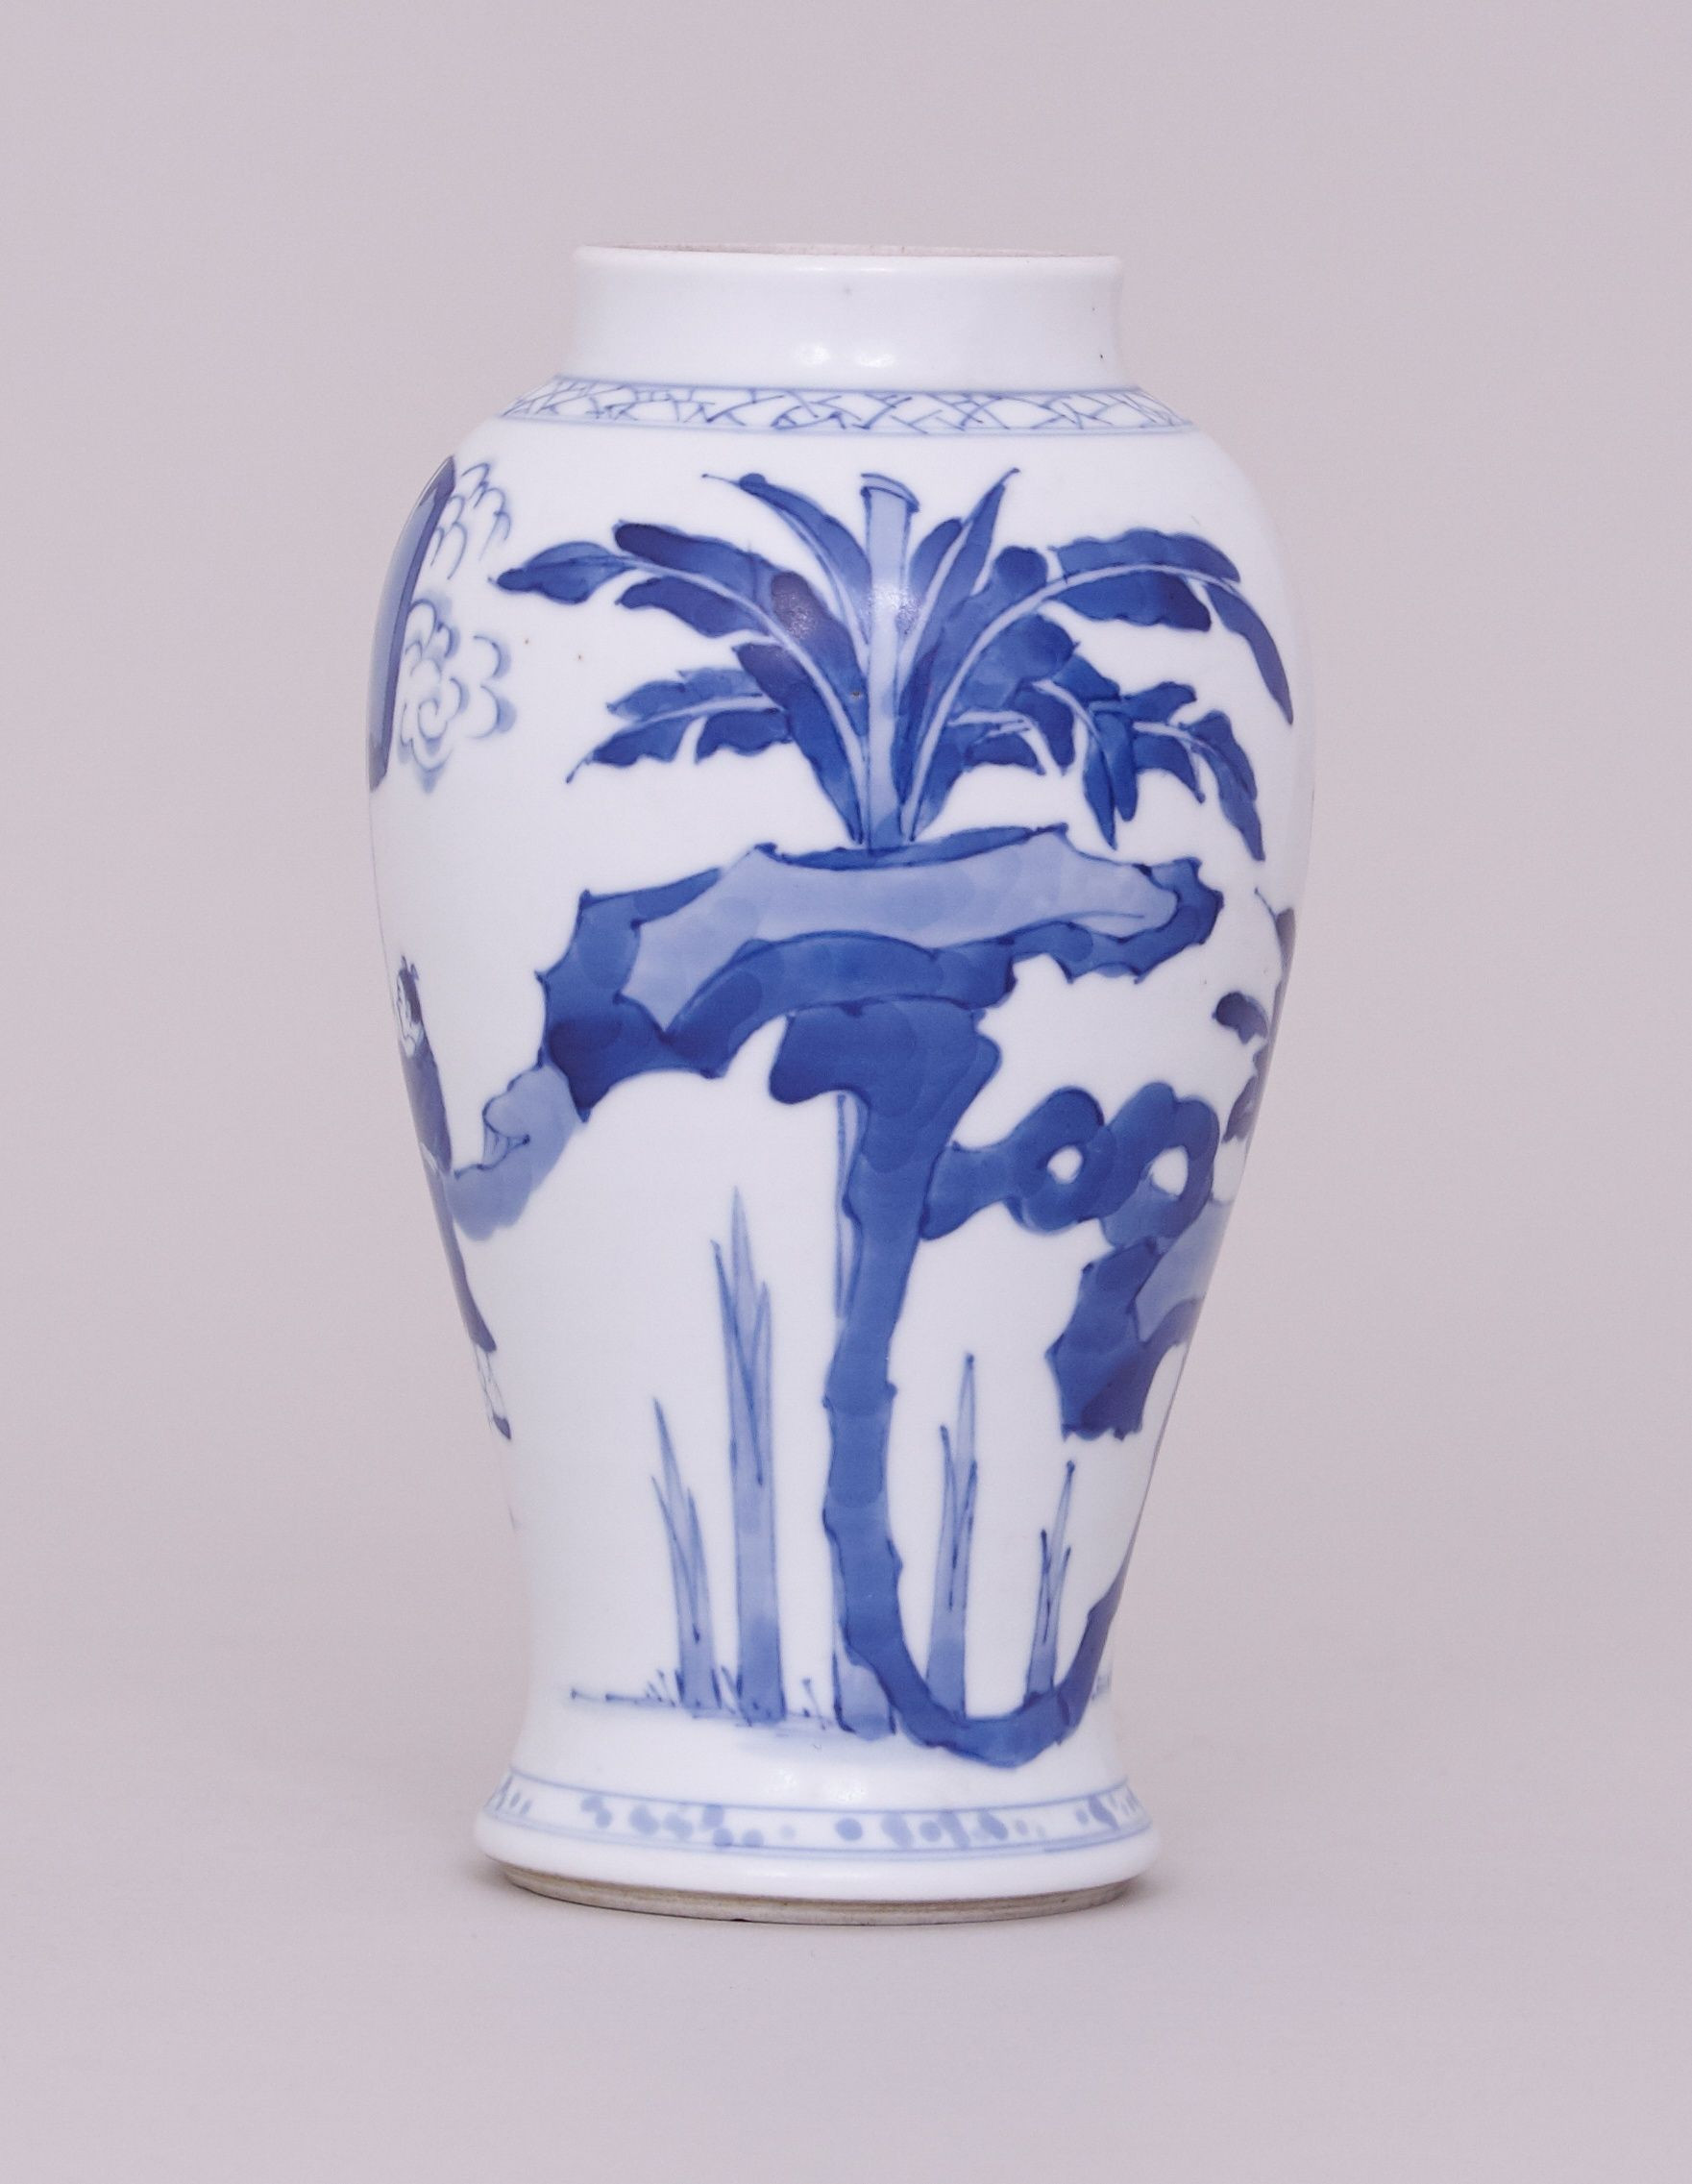 Fine China Vase Of Blue White Vase Lovely A Chinese Blue and White Vase Kangxi 1662 Inside Blue White Vase Lovely A Chinese Blue and White Vase Kangxi 1662 1722